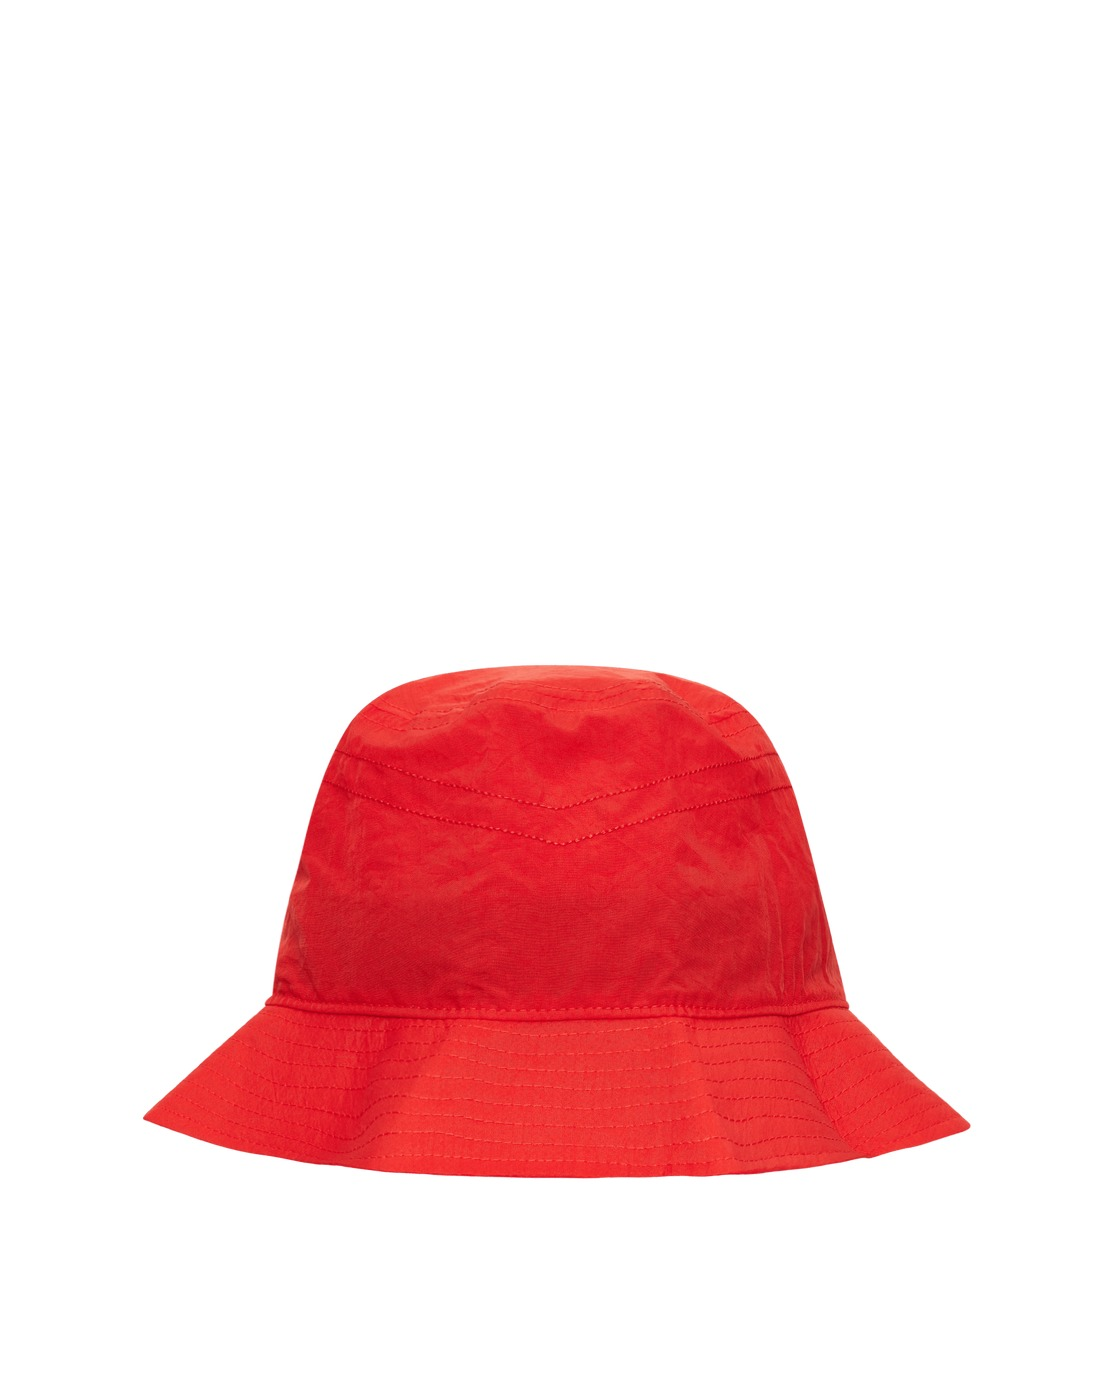 Nike Special Project Stussy Bucket Hat Habanero Red/White